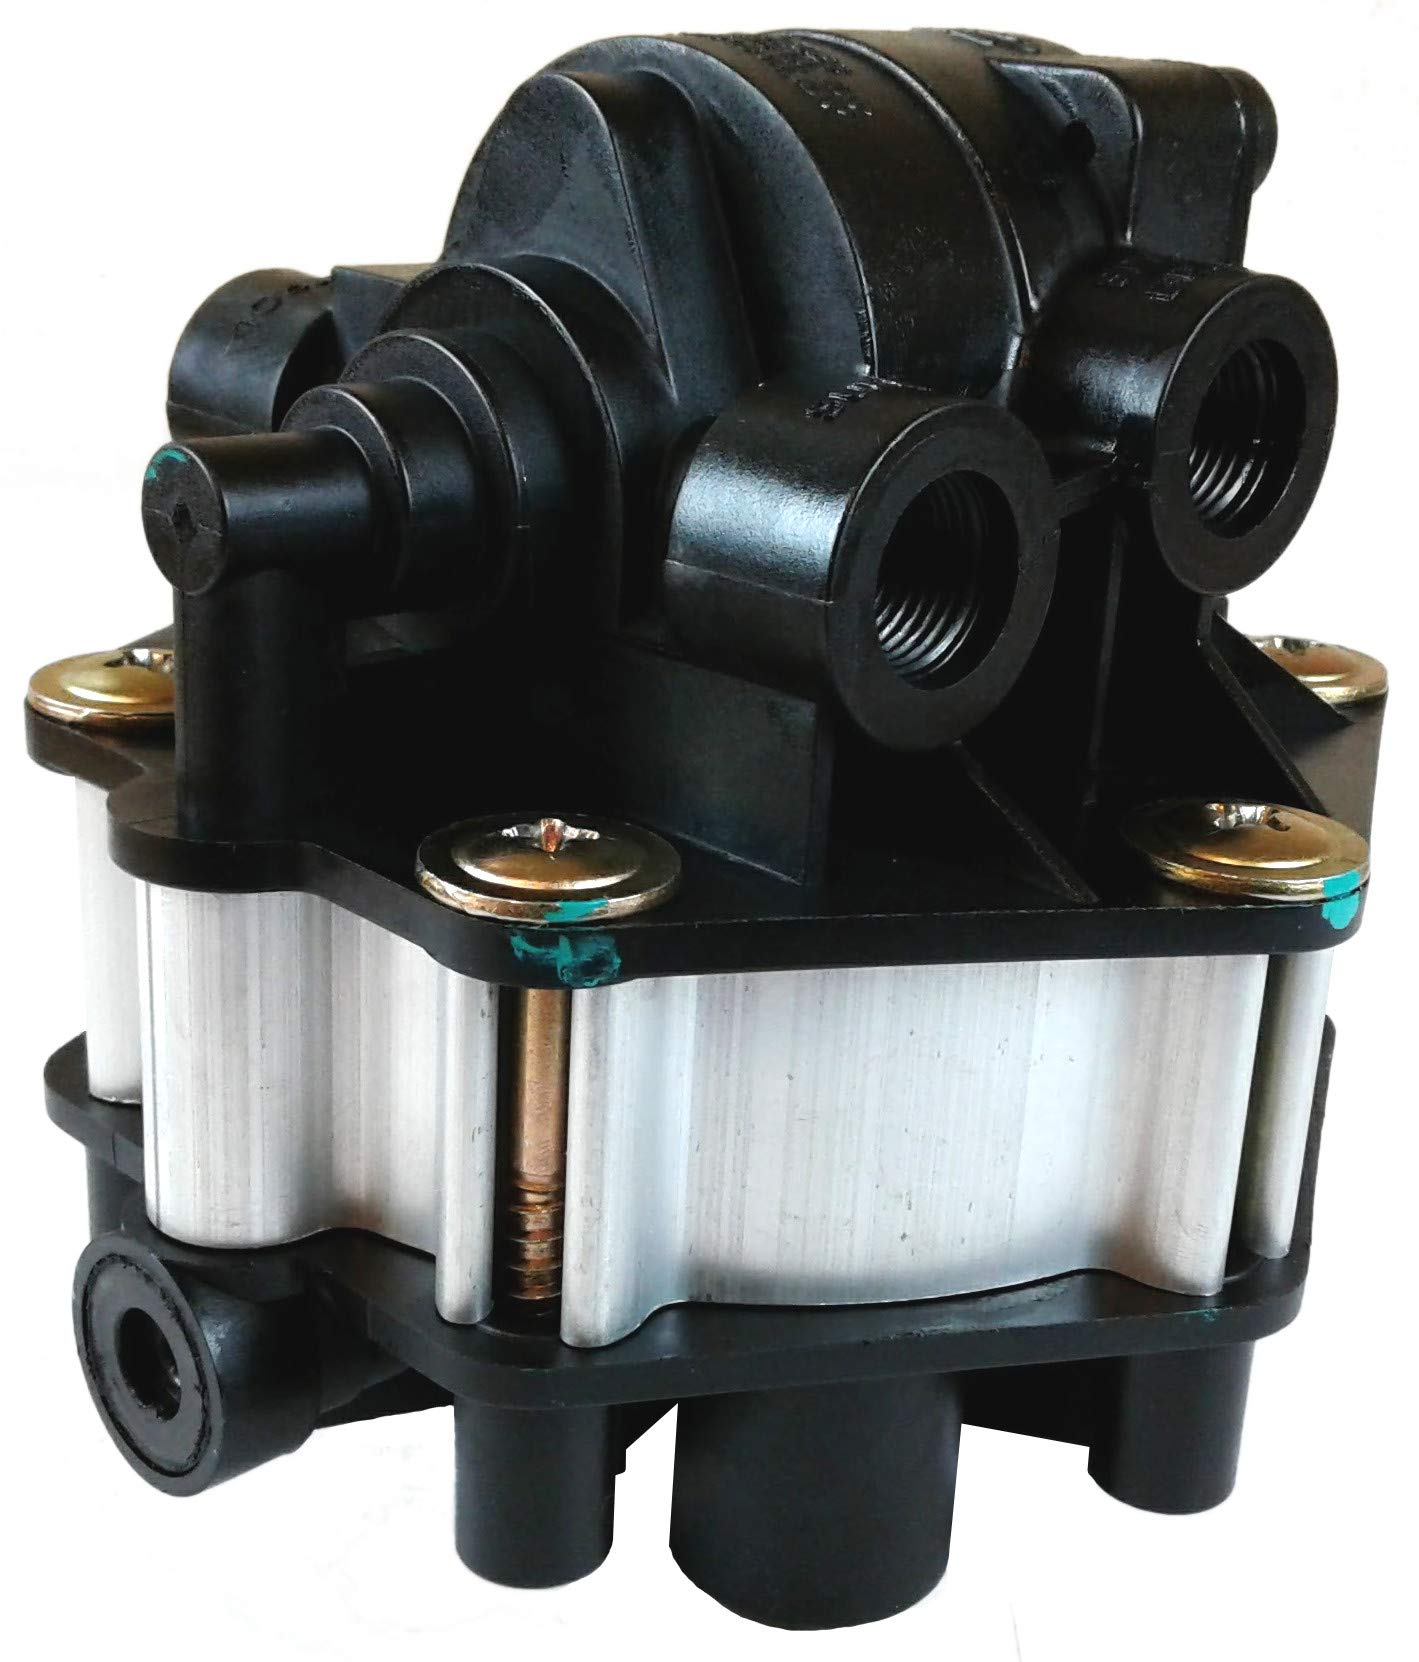 FF2 Full Function Trailer Brake Valve - 3/4'' Reservoir for Heavy Duty Big Rigs by Brianna Auto Parts (BAP) (Image #2)